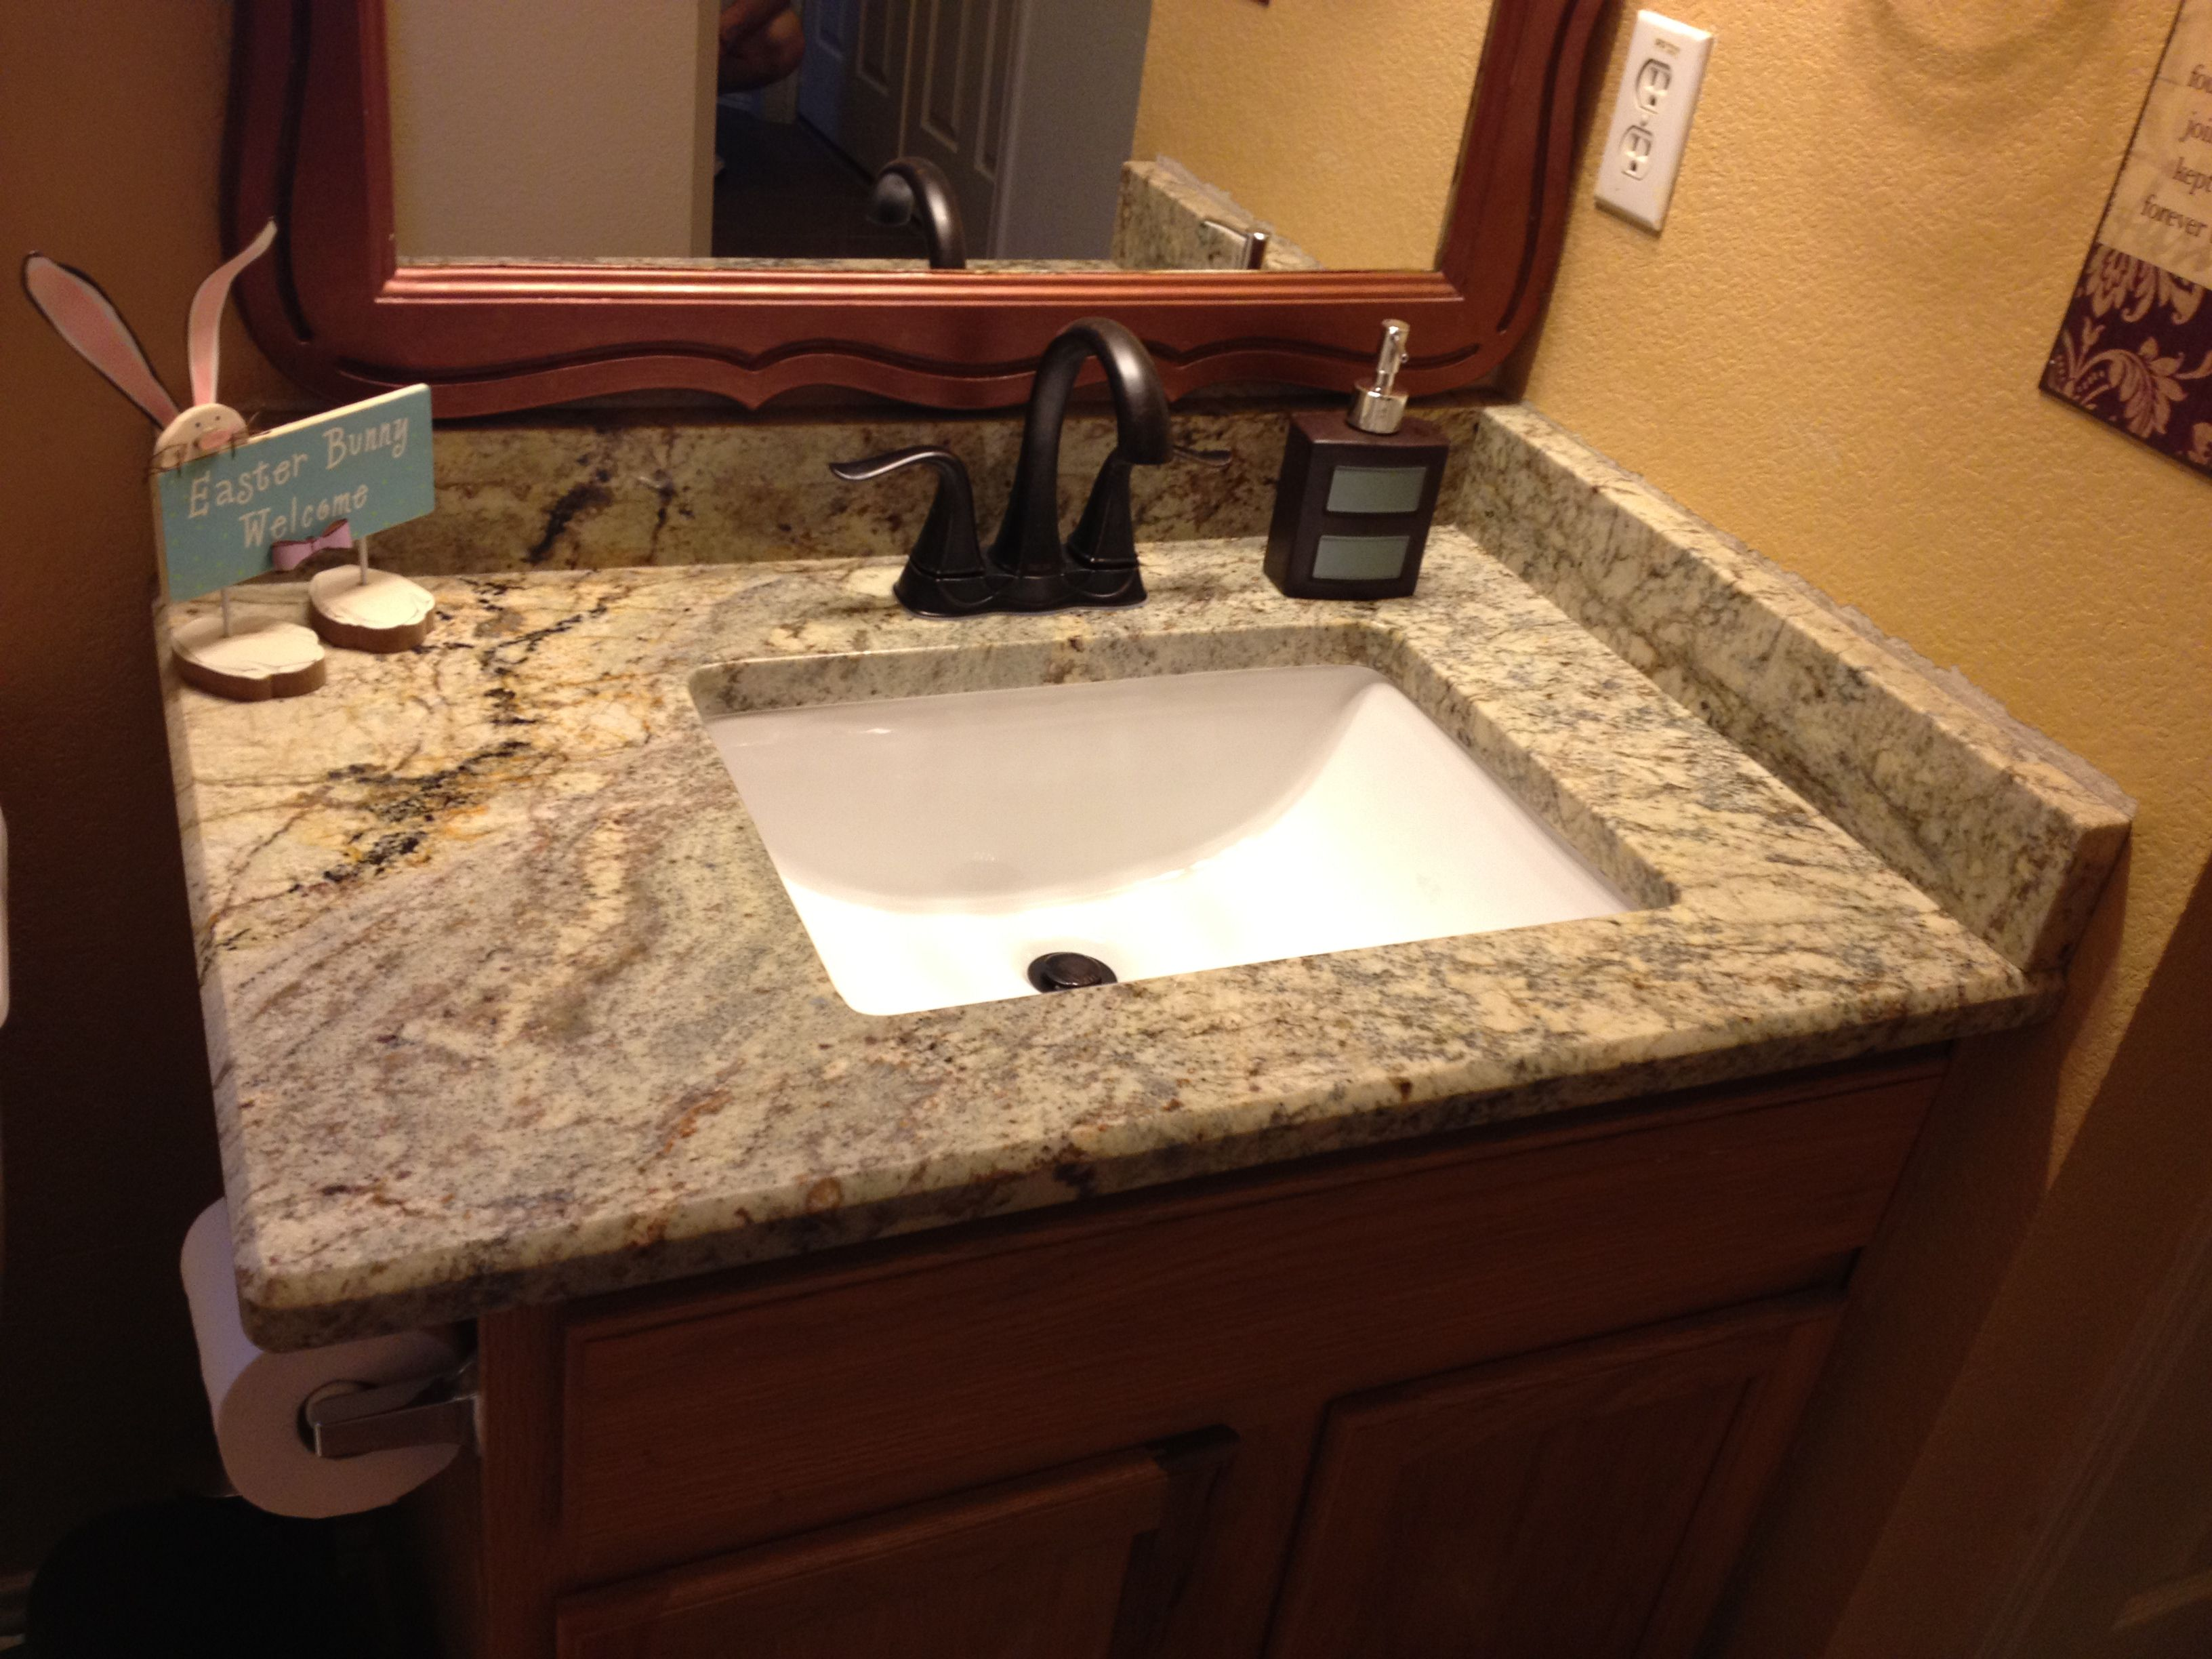 Square Undermount Sink With Granite Counter Bathroom Vanity